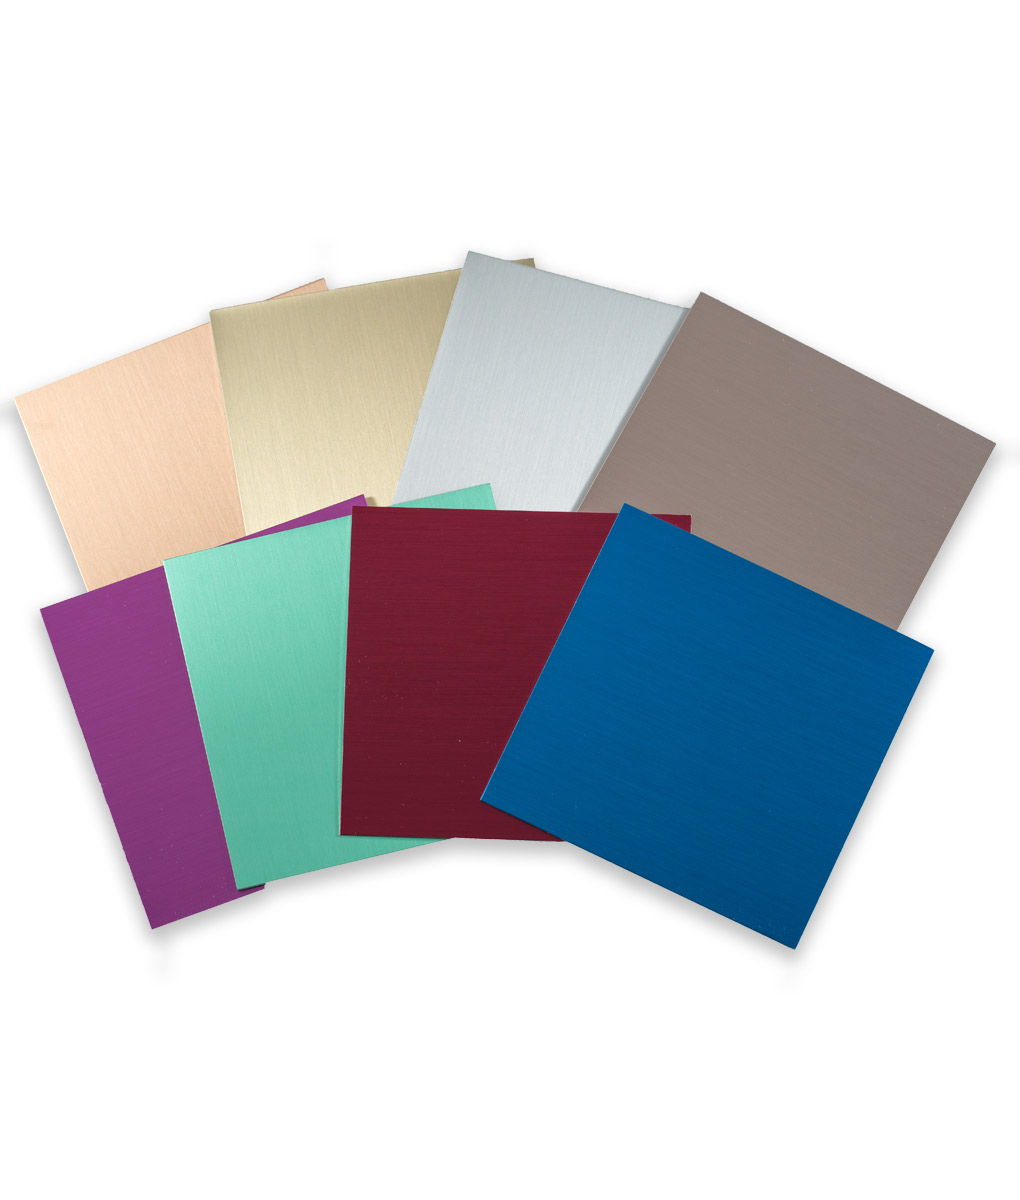 Aluminum Satin Engraving Material all color samples shown